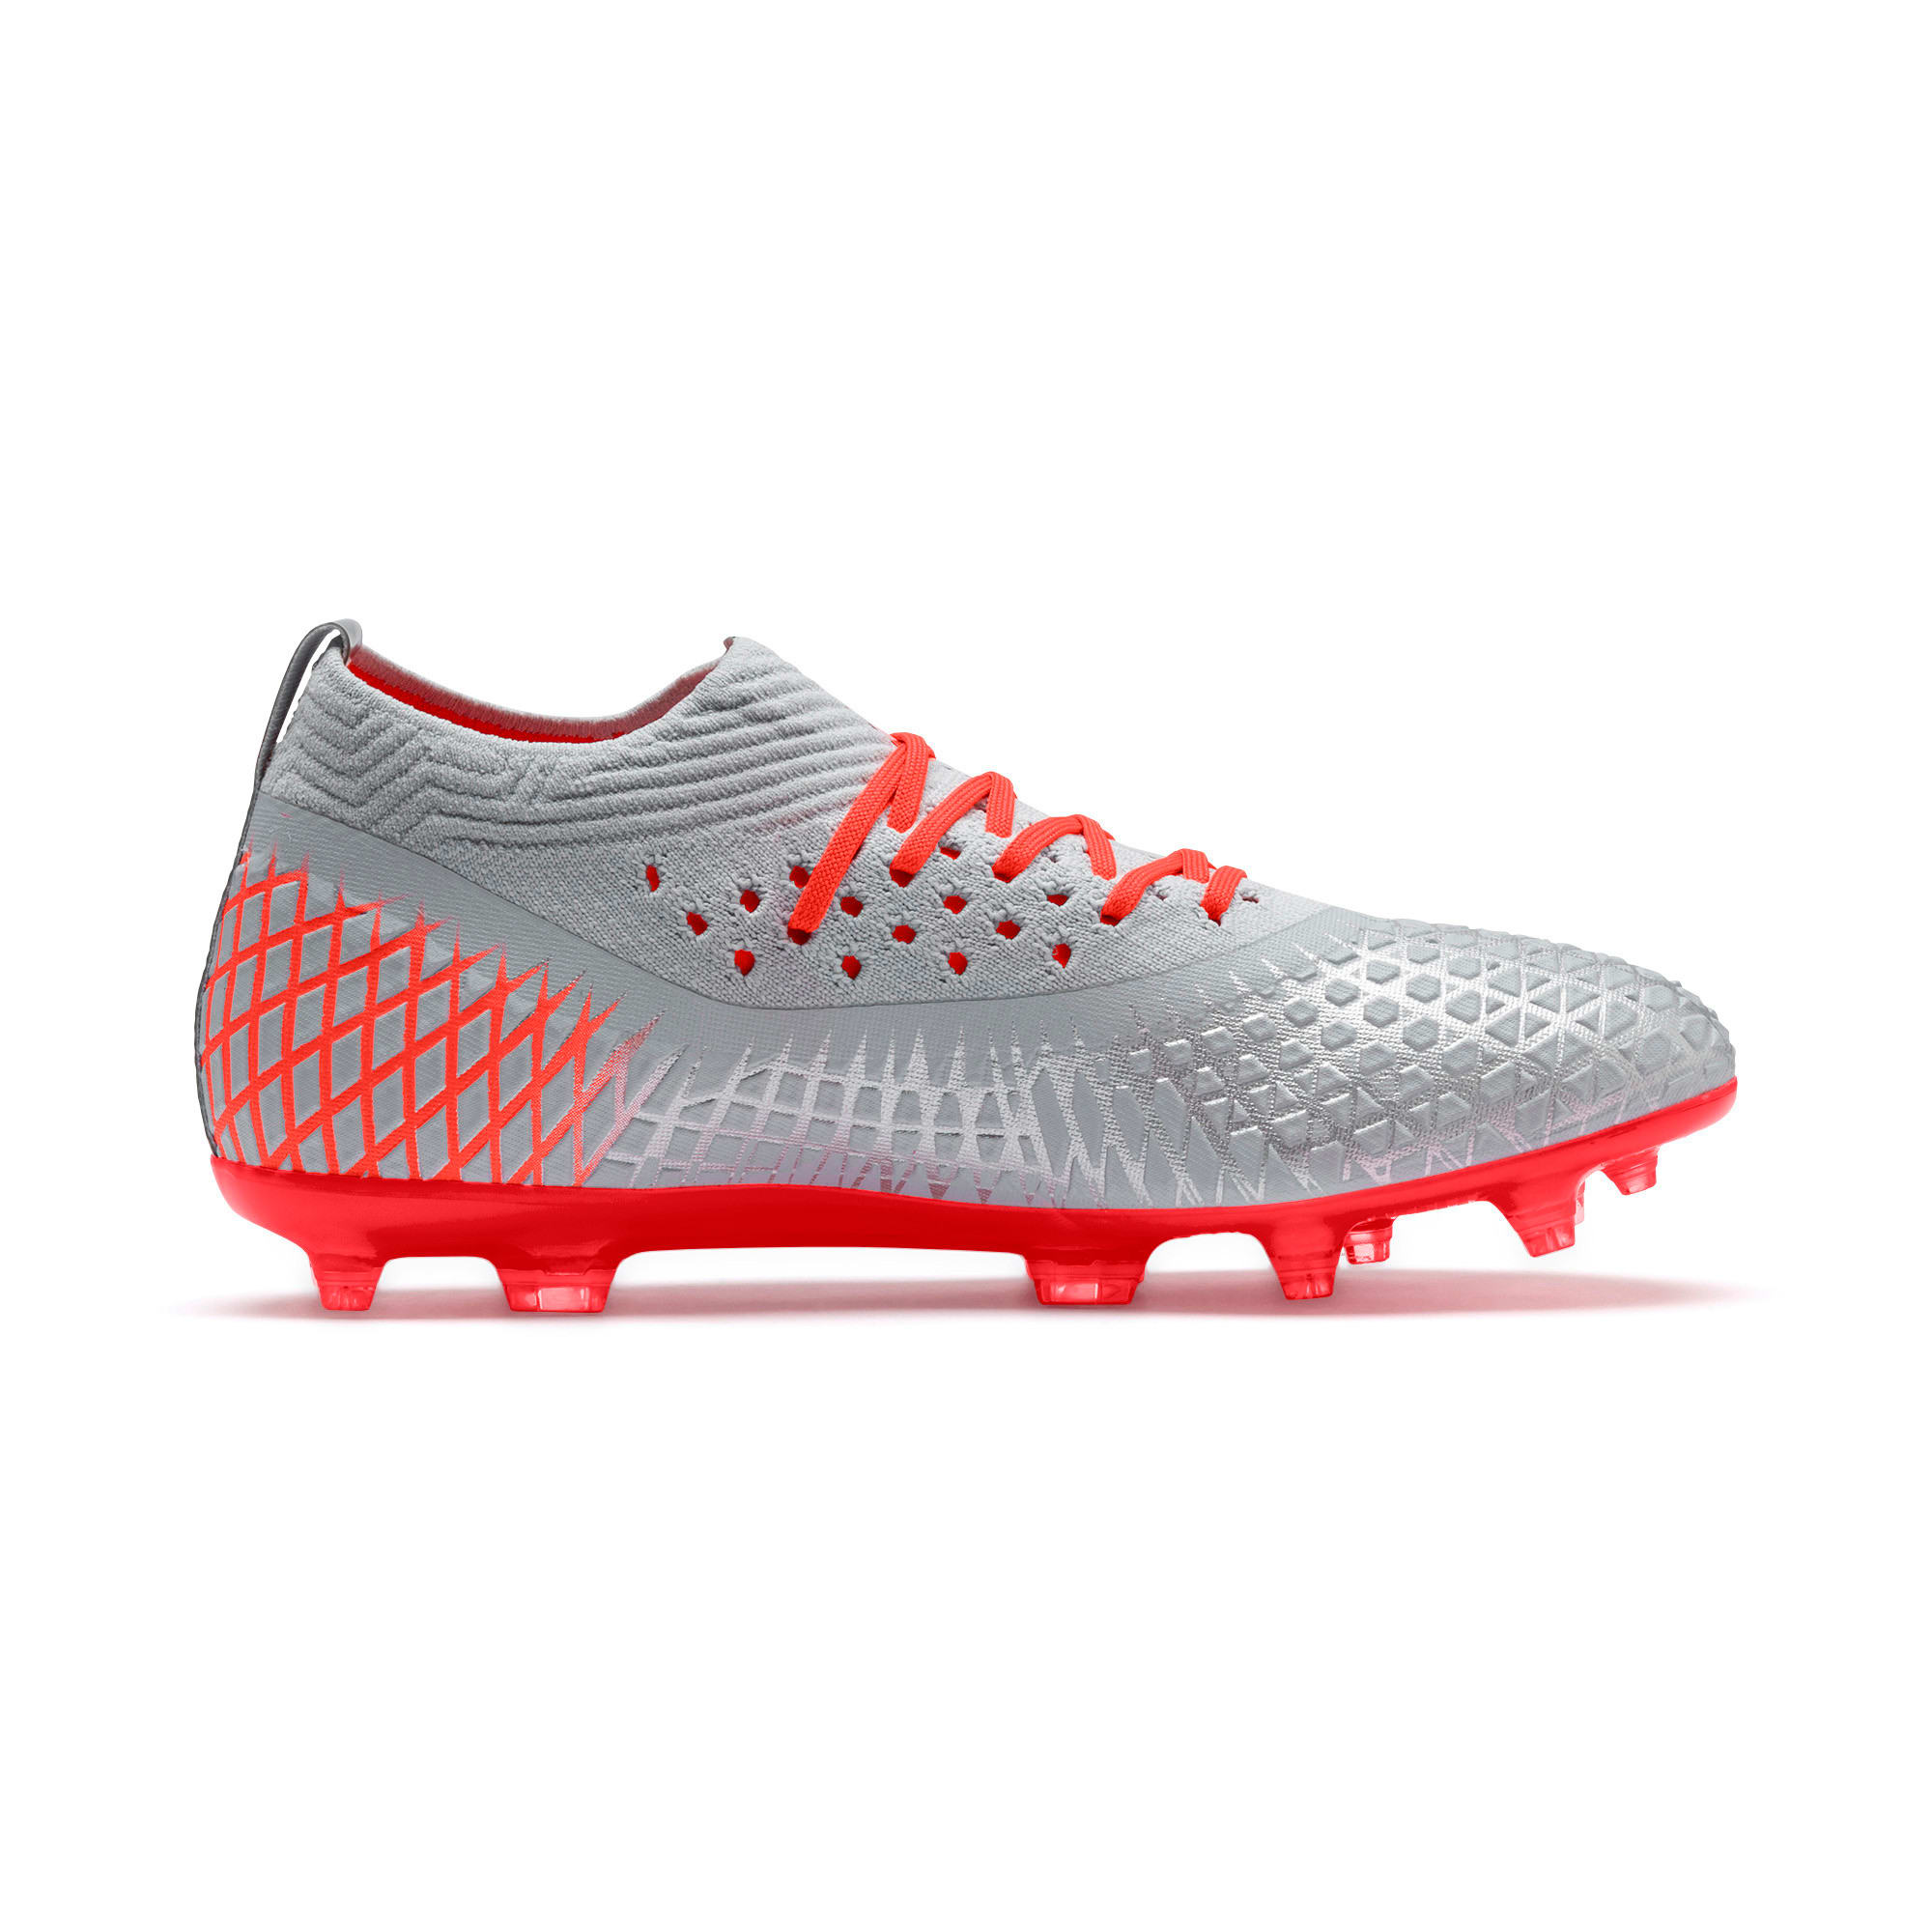 FUTURE 4.2 NETFIT FG/AG voetbalschoenen voor mannen, Glacial Blue-Nrgy Red, large